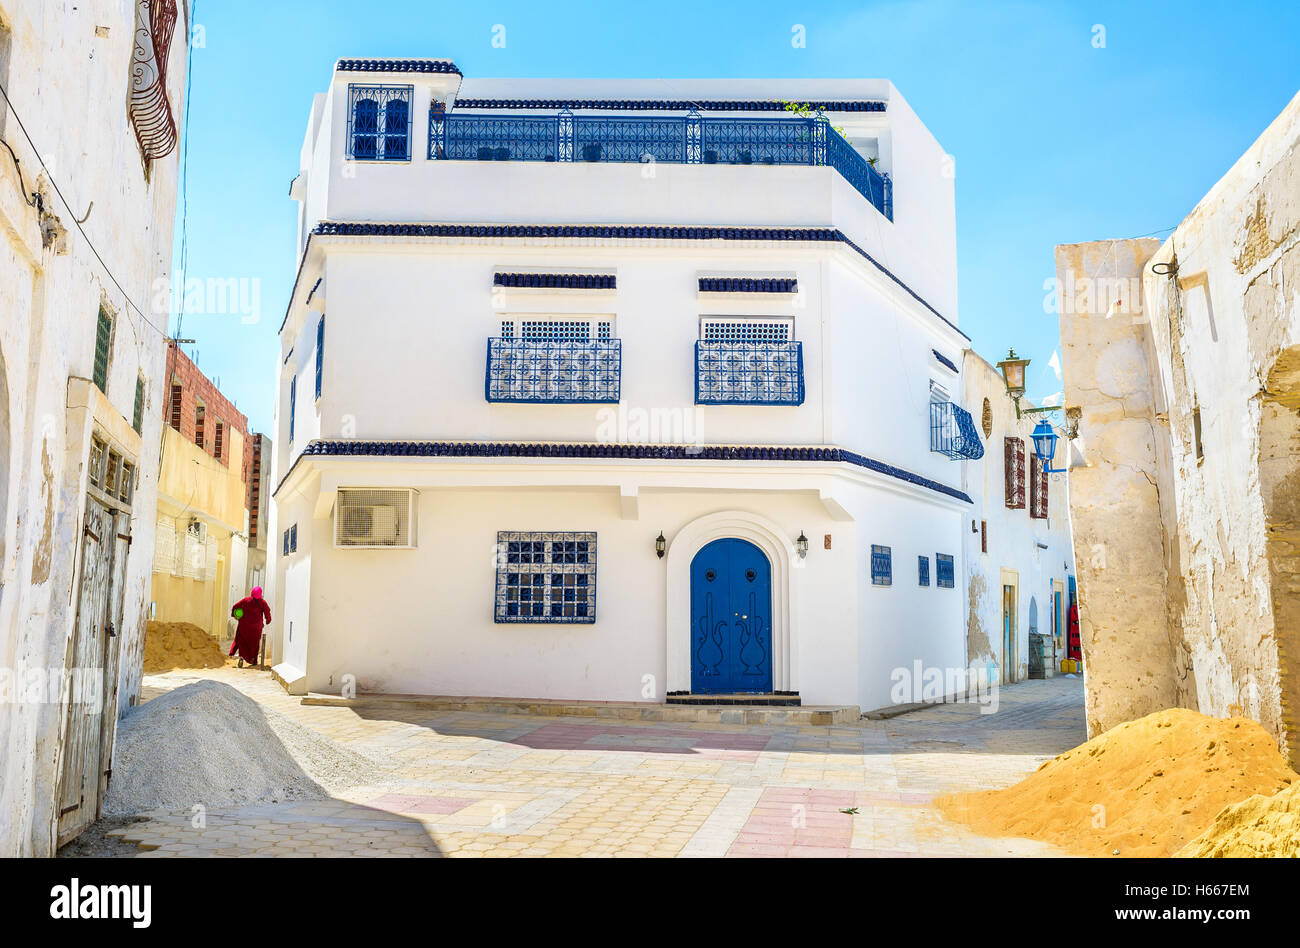 The large house, as for old arabic Medina, on the crossroad, Kairouan, Tunisia. - Stock Image